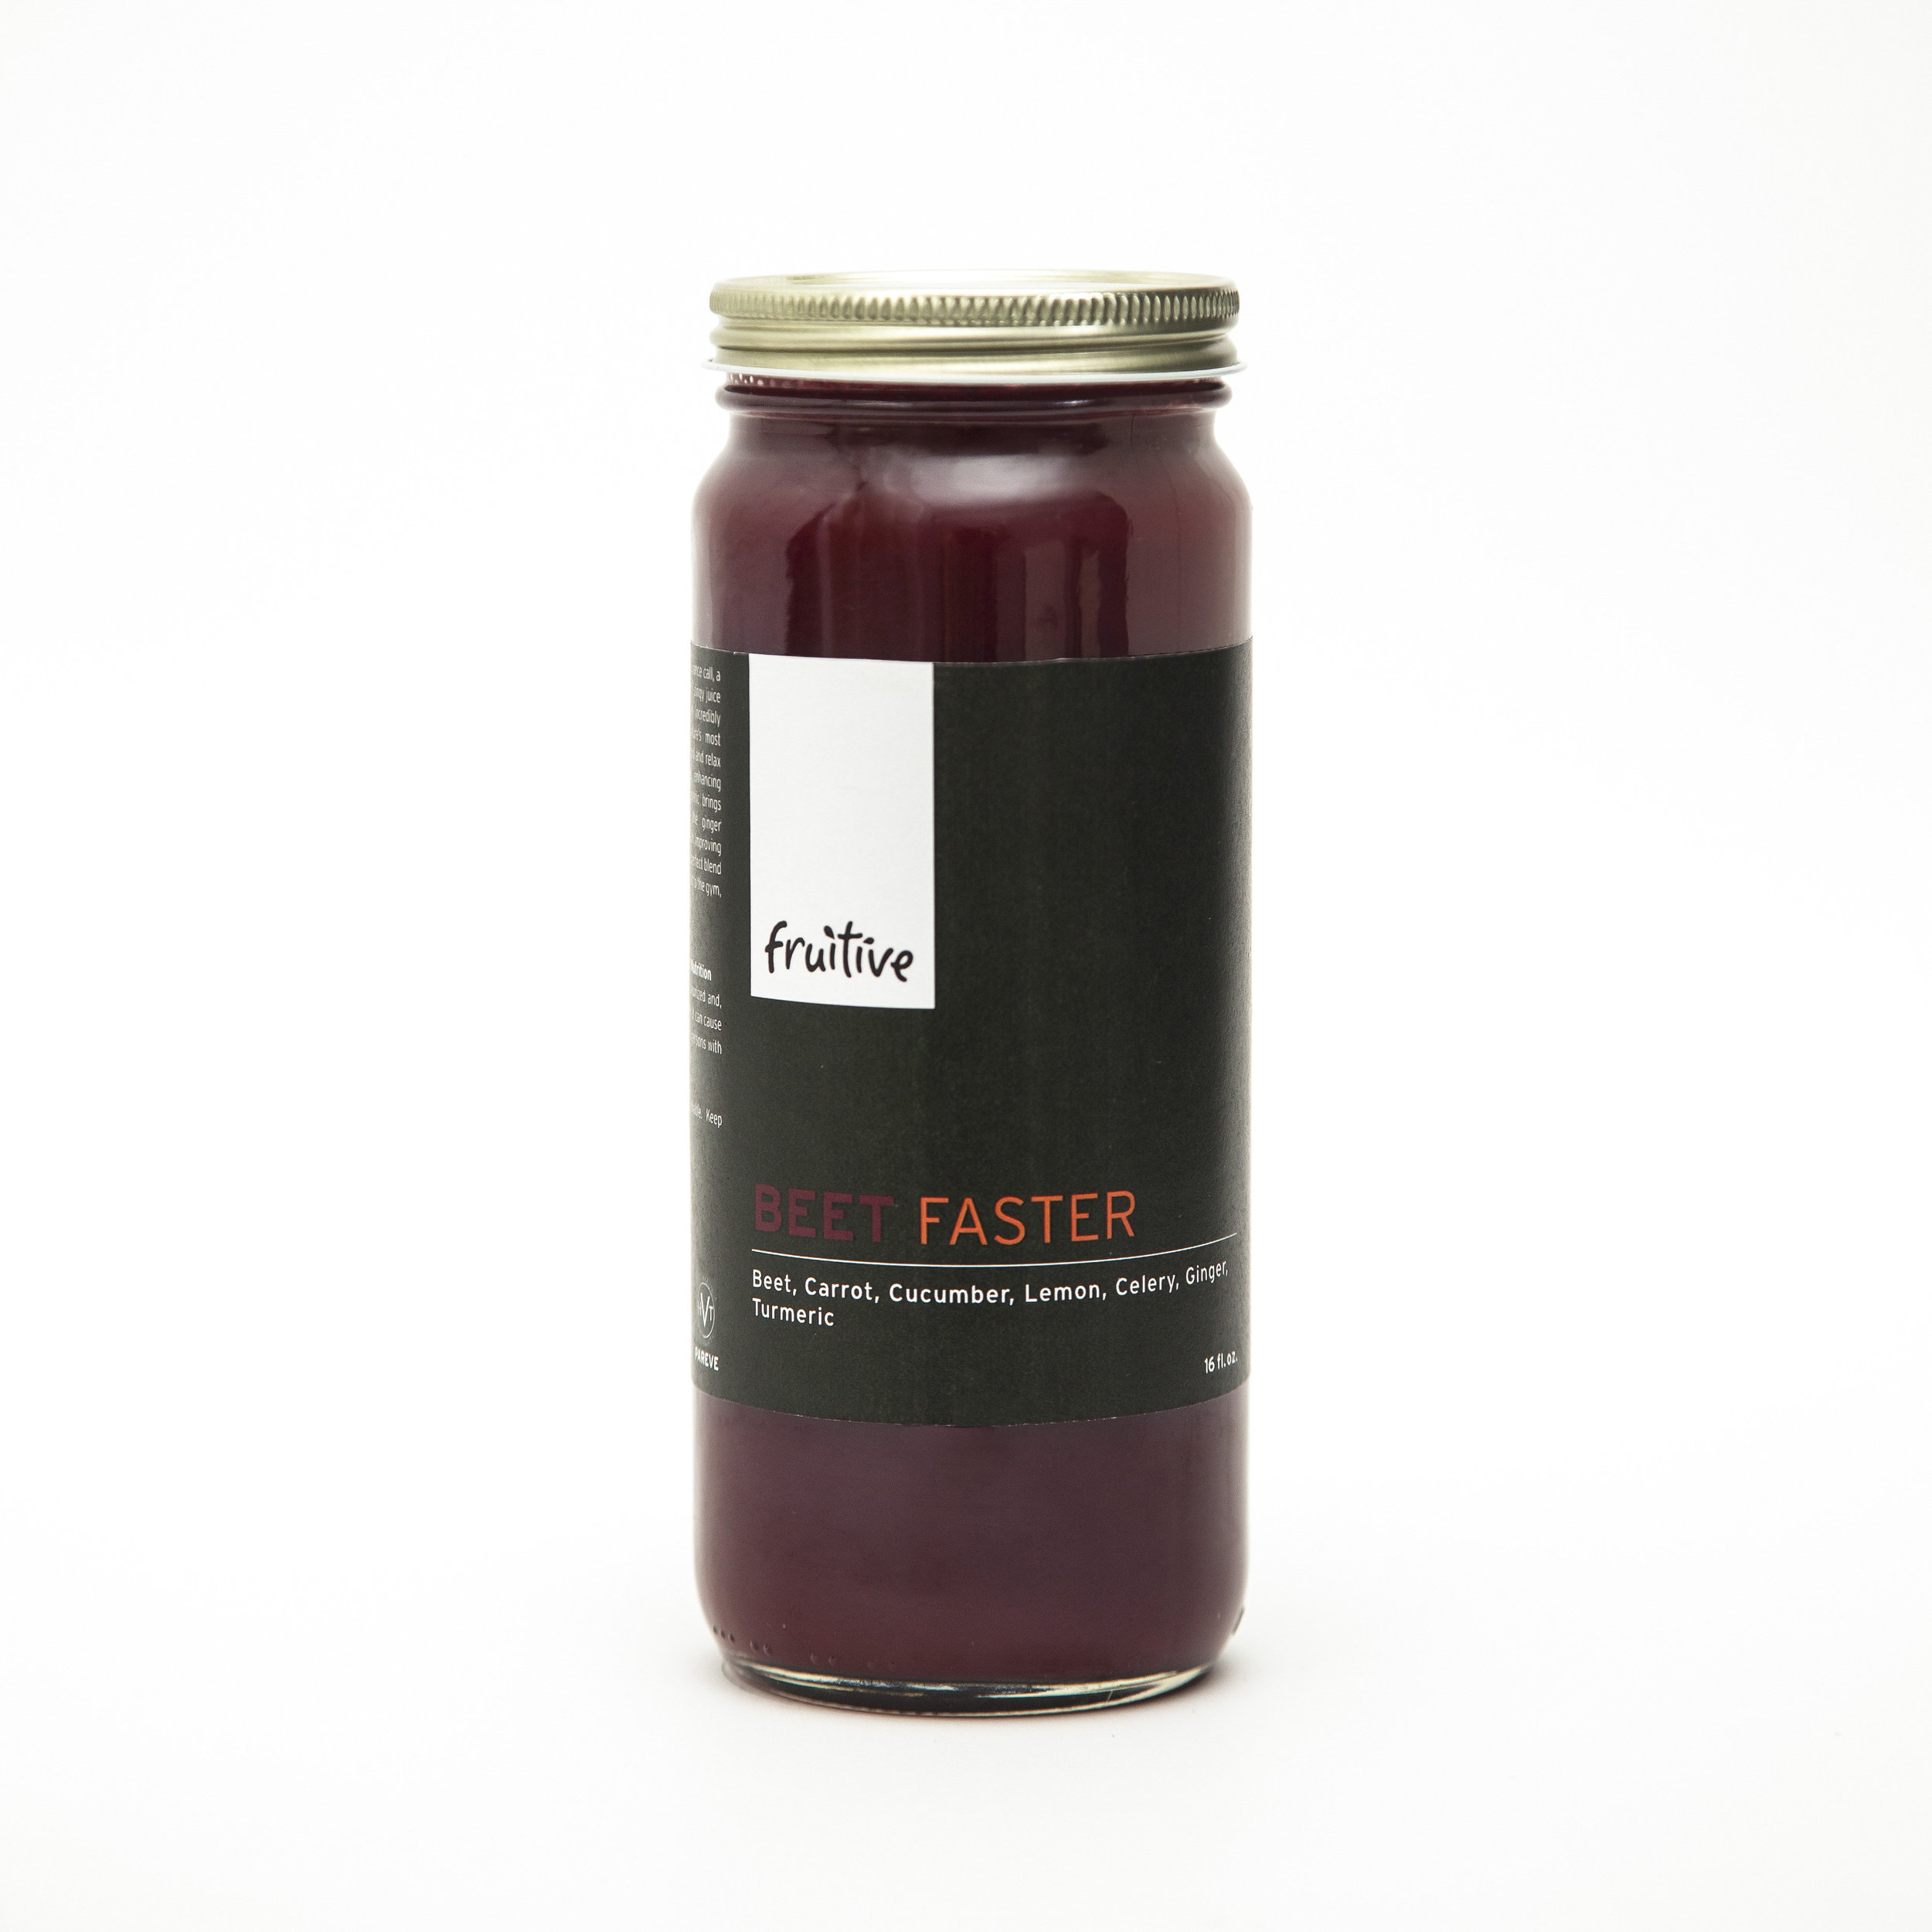 Beet Faster